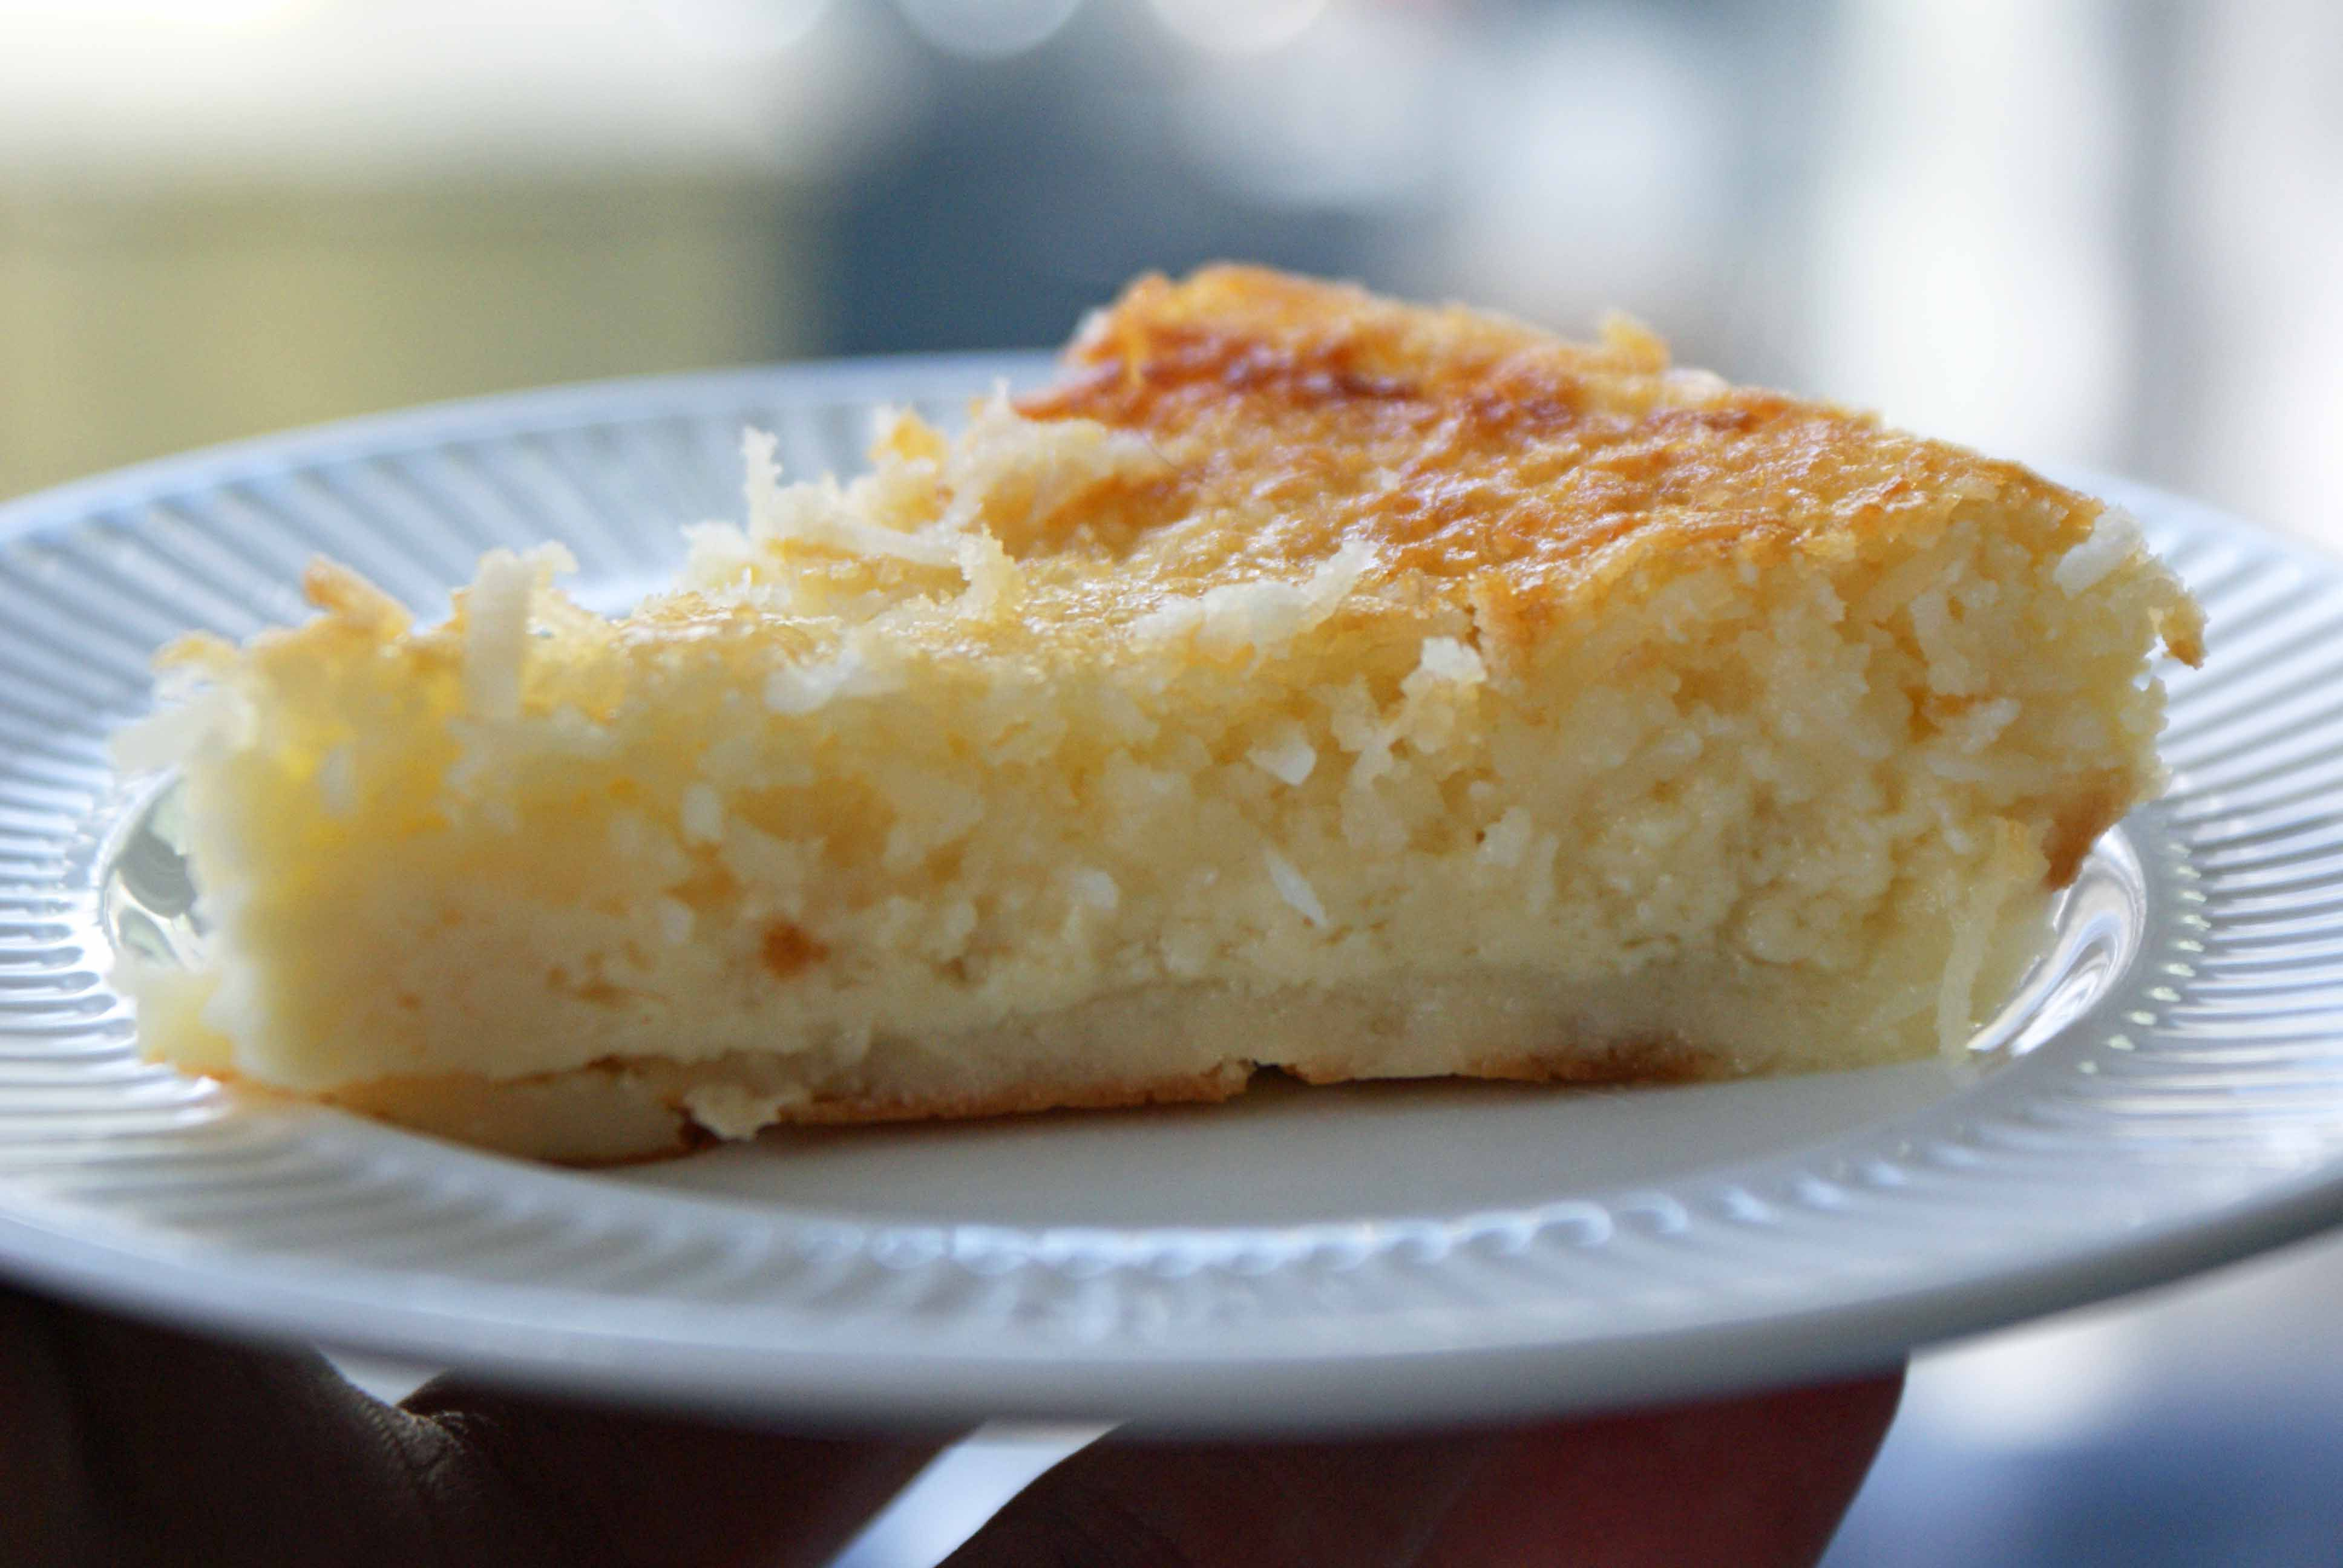 Impossible Coconut Pie...all you do is combine the ingredients and bake. Like magic it layers into crust, custard, coconut topping. Cool!